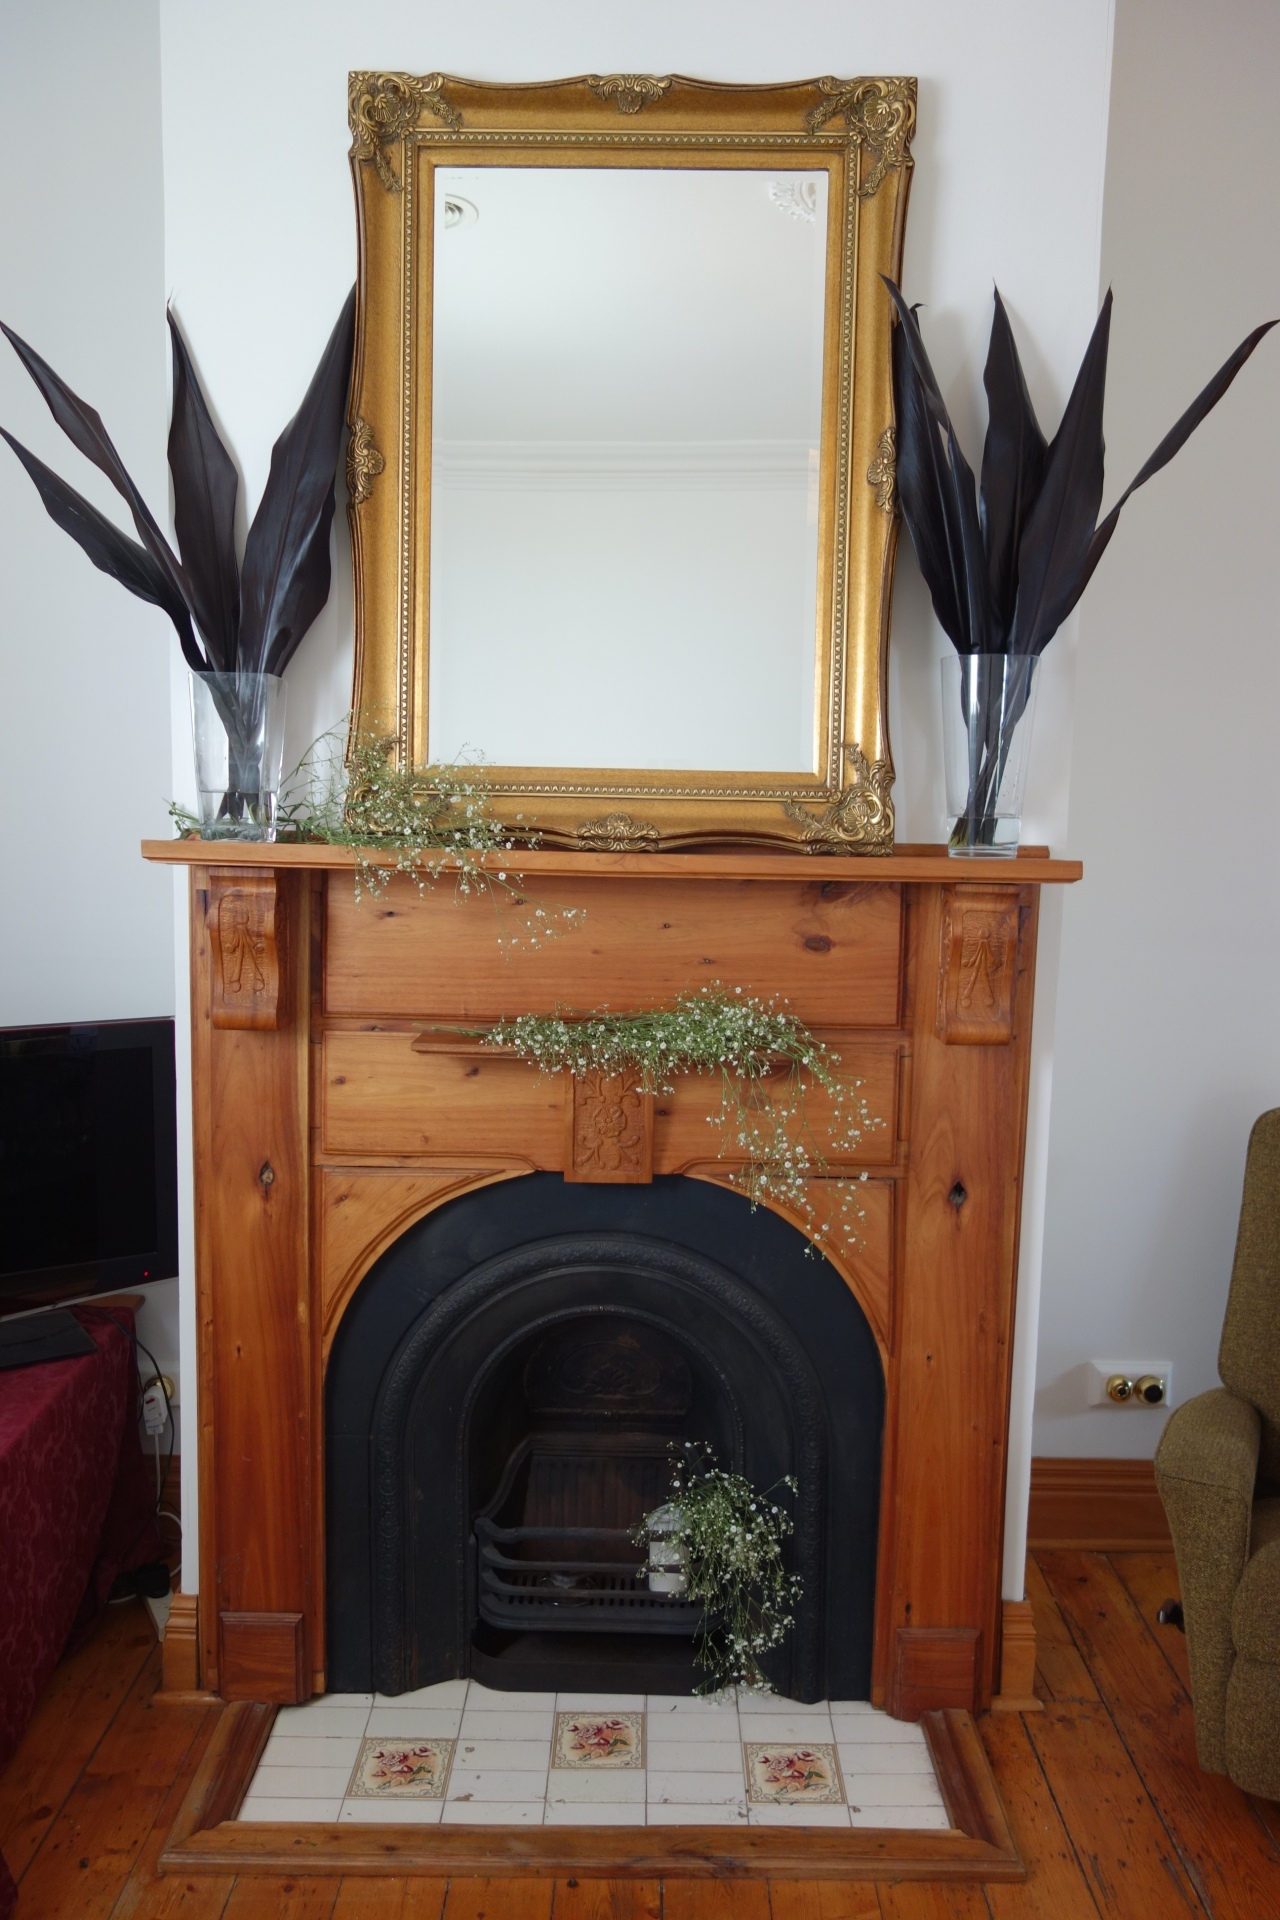 Babys breath flowers in fireplace